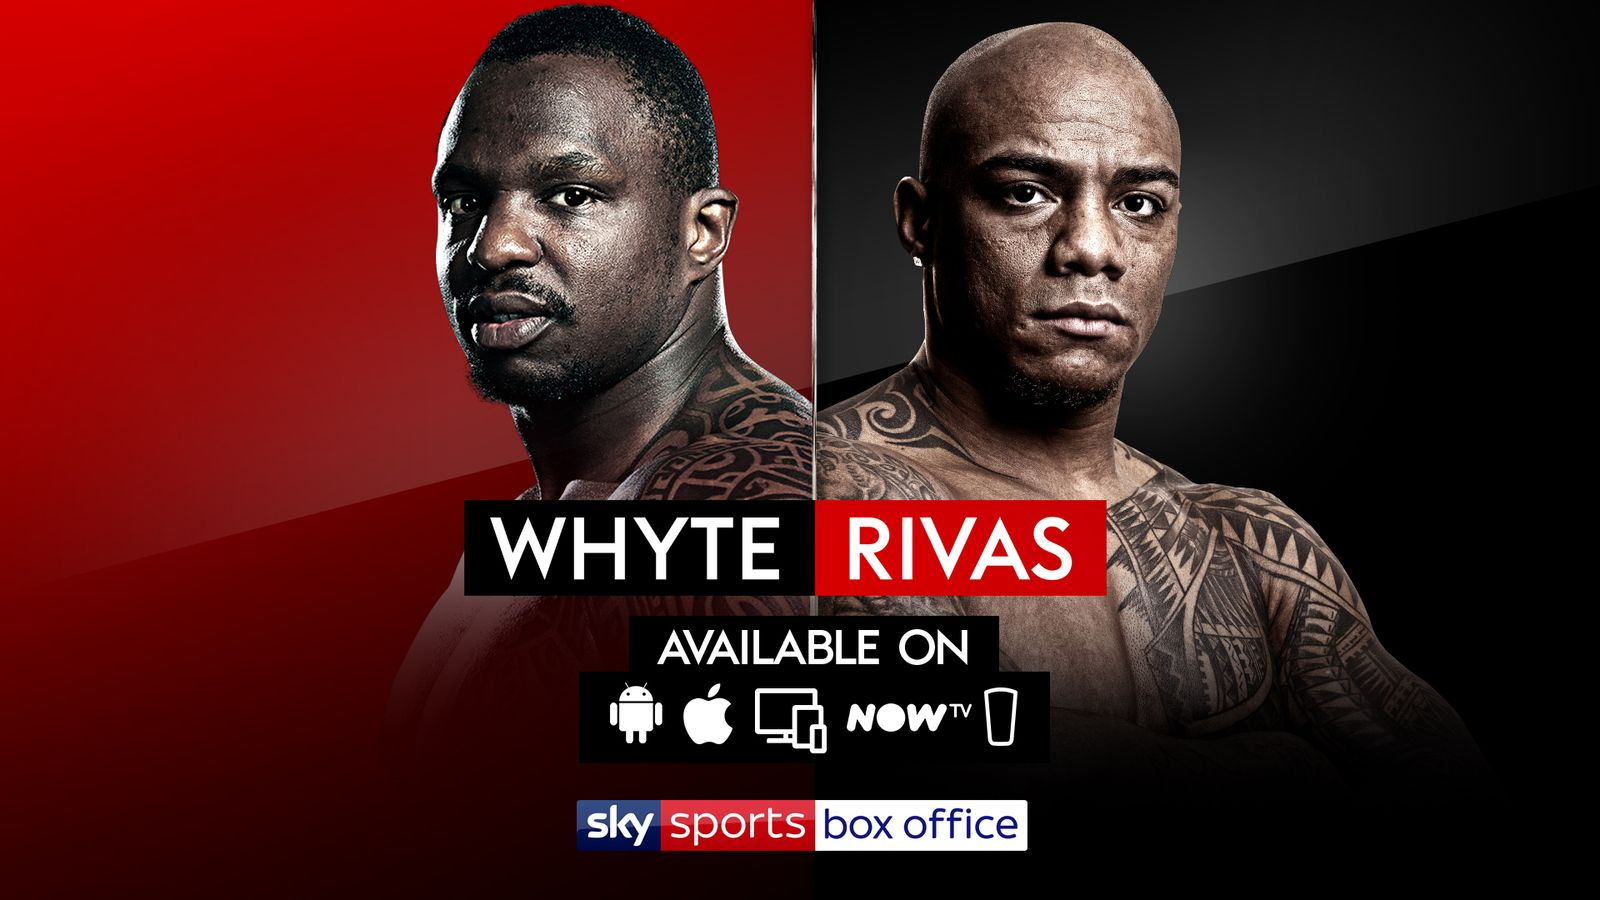 whyte vs rivas: here's how to book and watch if you are not a sky tv  subscriber | boxing news | sky sports